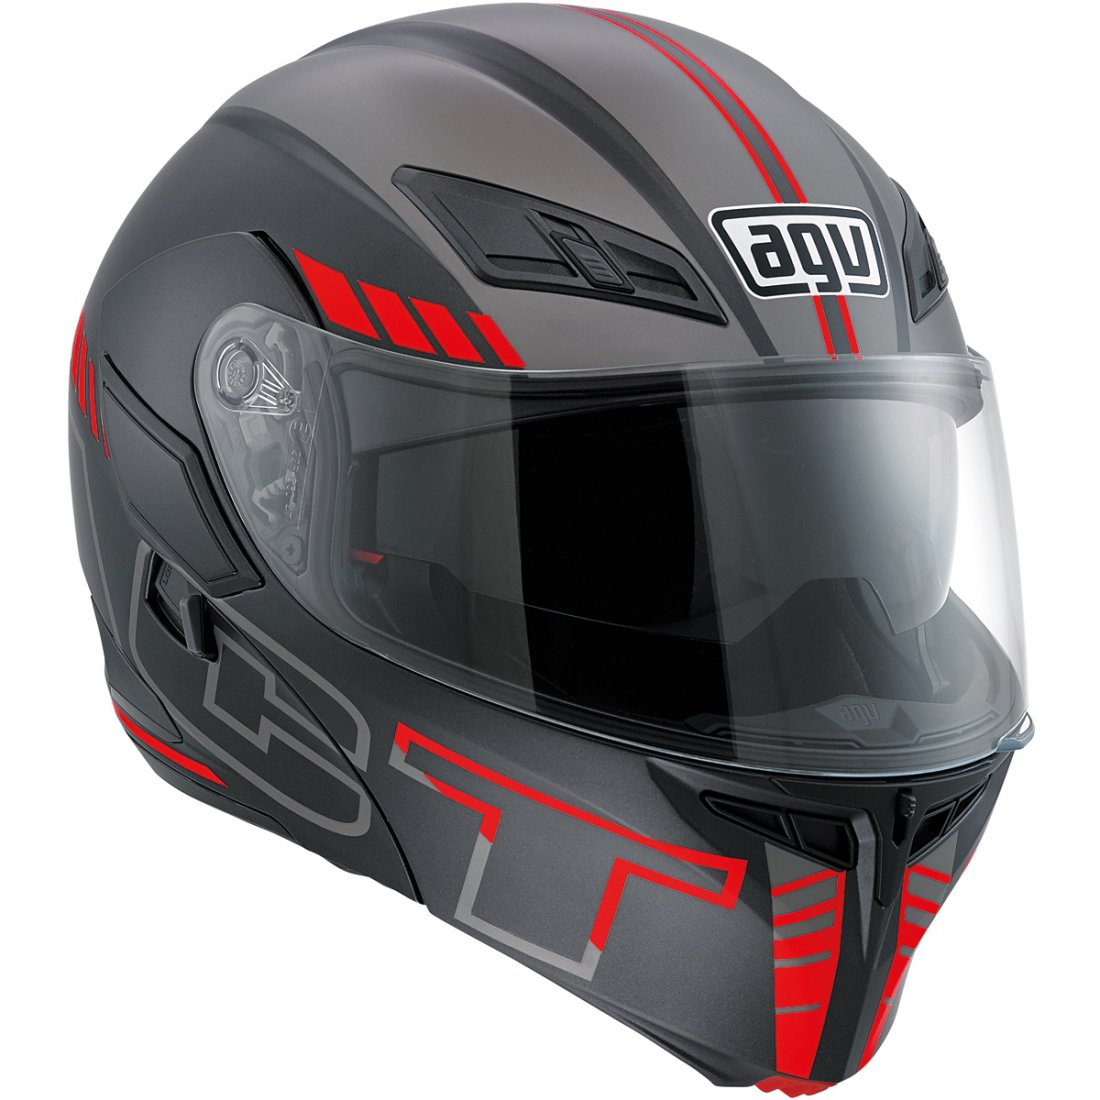 Casco AGV Compact ST Seattle Matt Black   Silver   Red · Motocard 8a94d00f48b